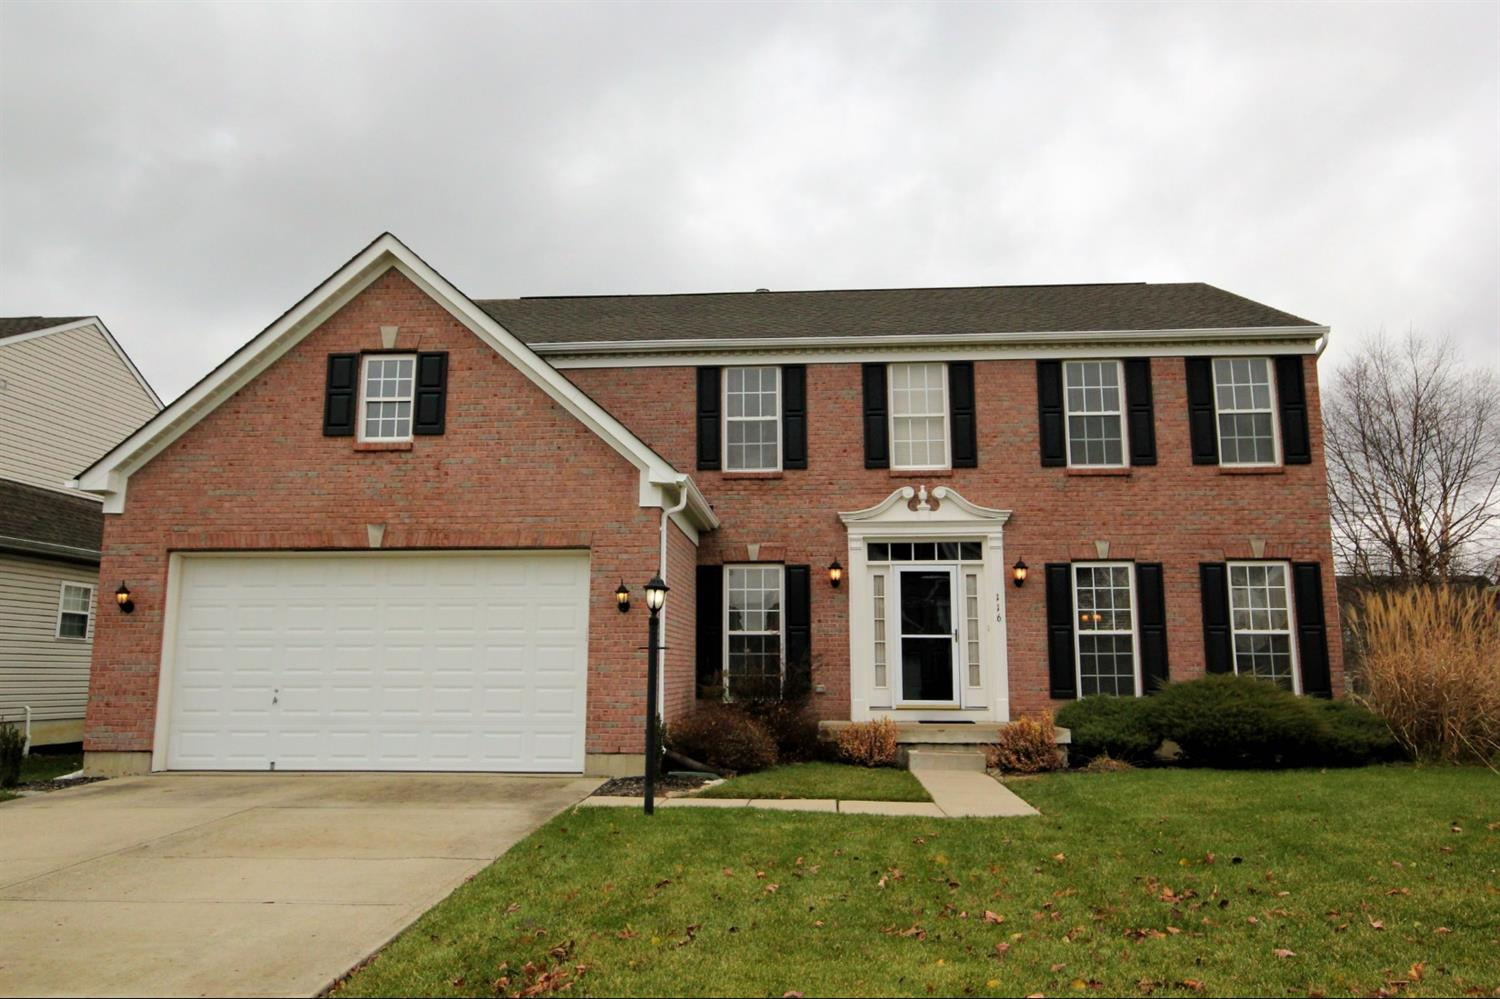 116 Leather Leaf Ln, Lebanon, OH 45036 Listing Details ...